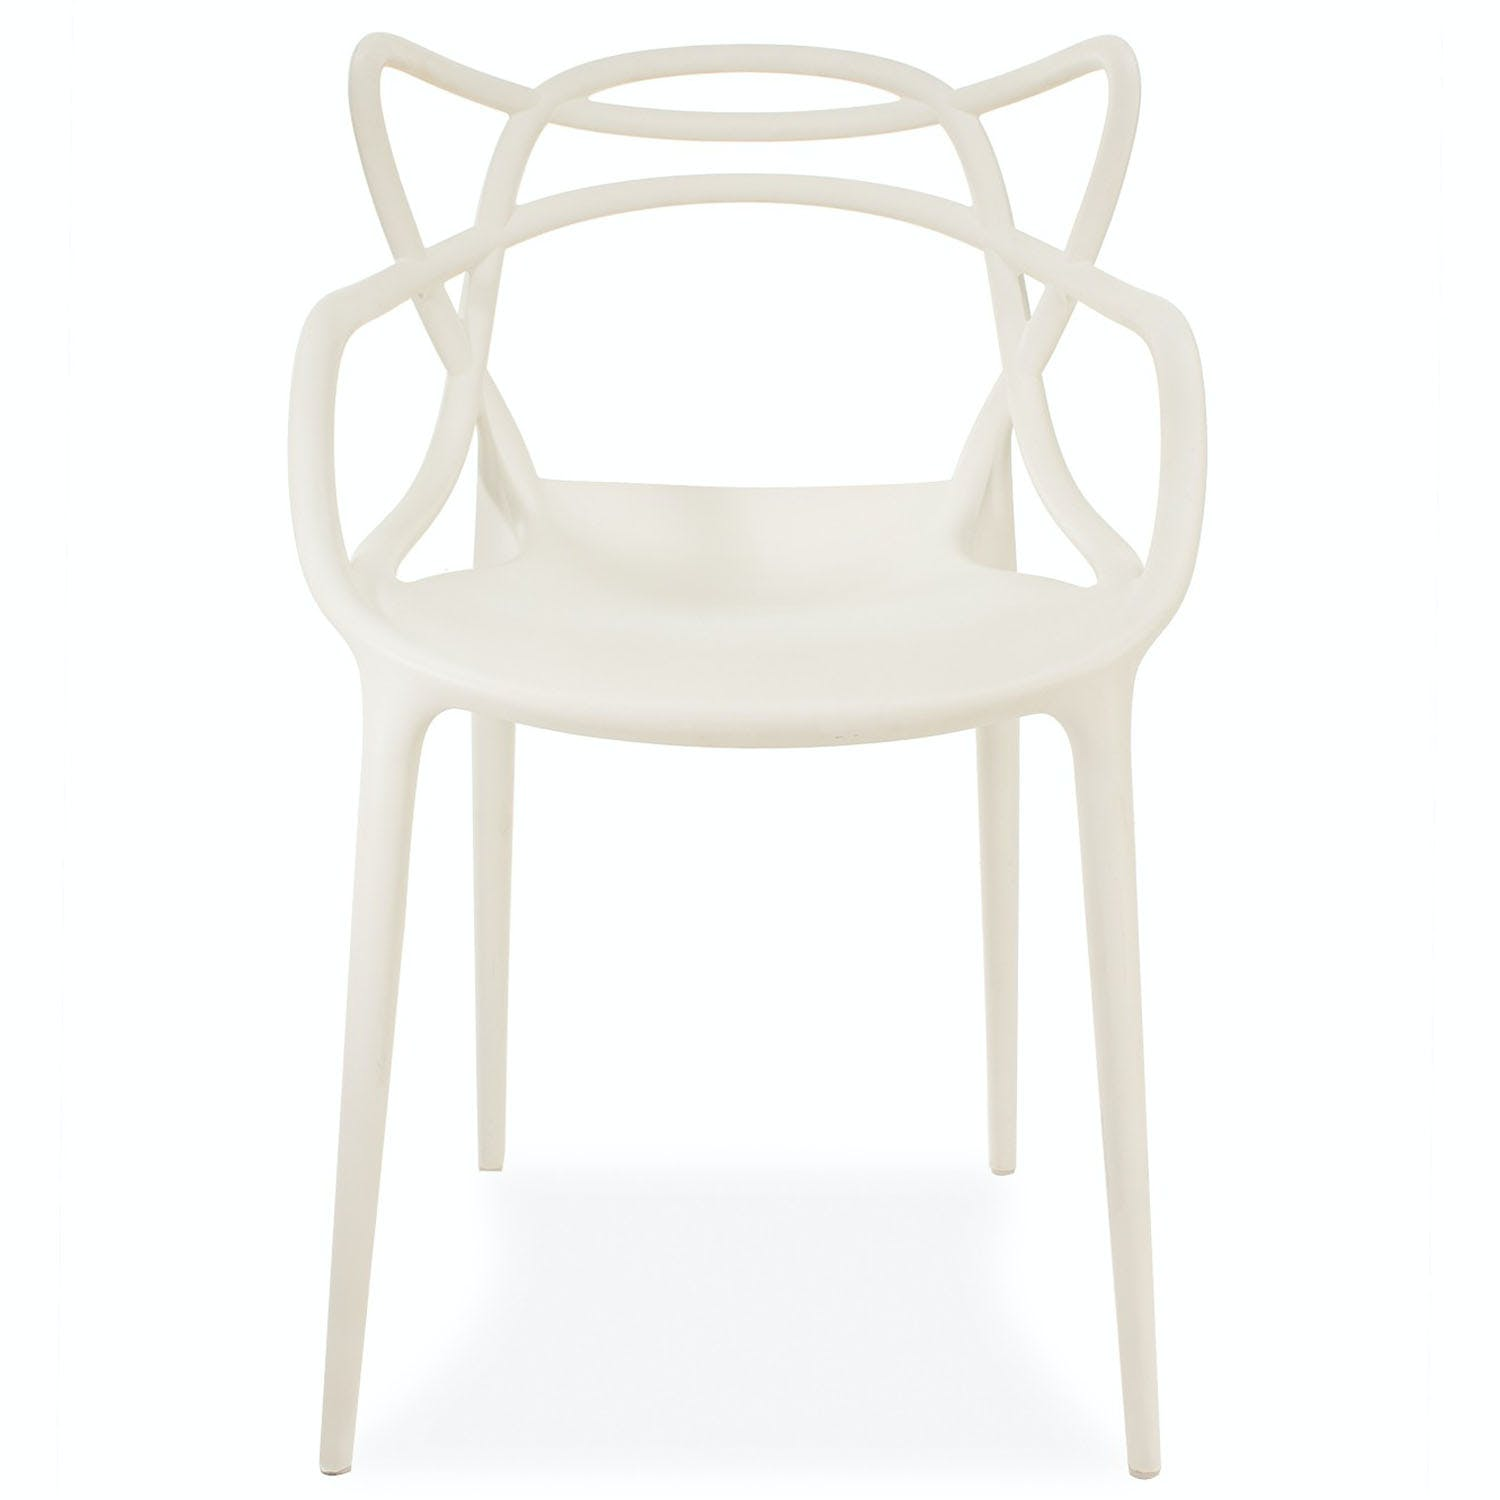 Product Image - Masters Chair White